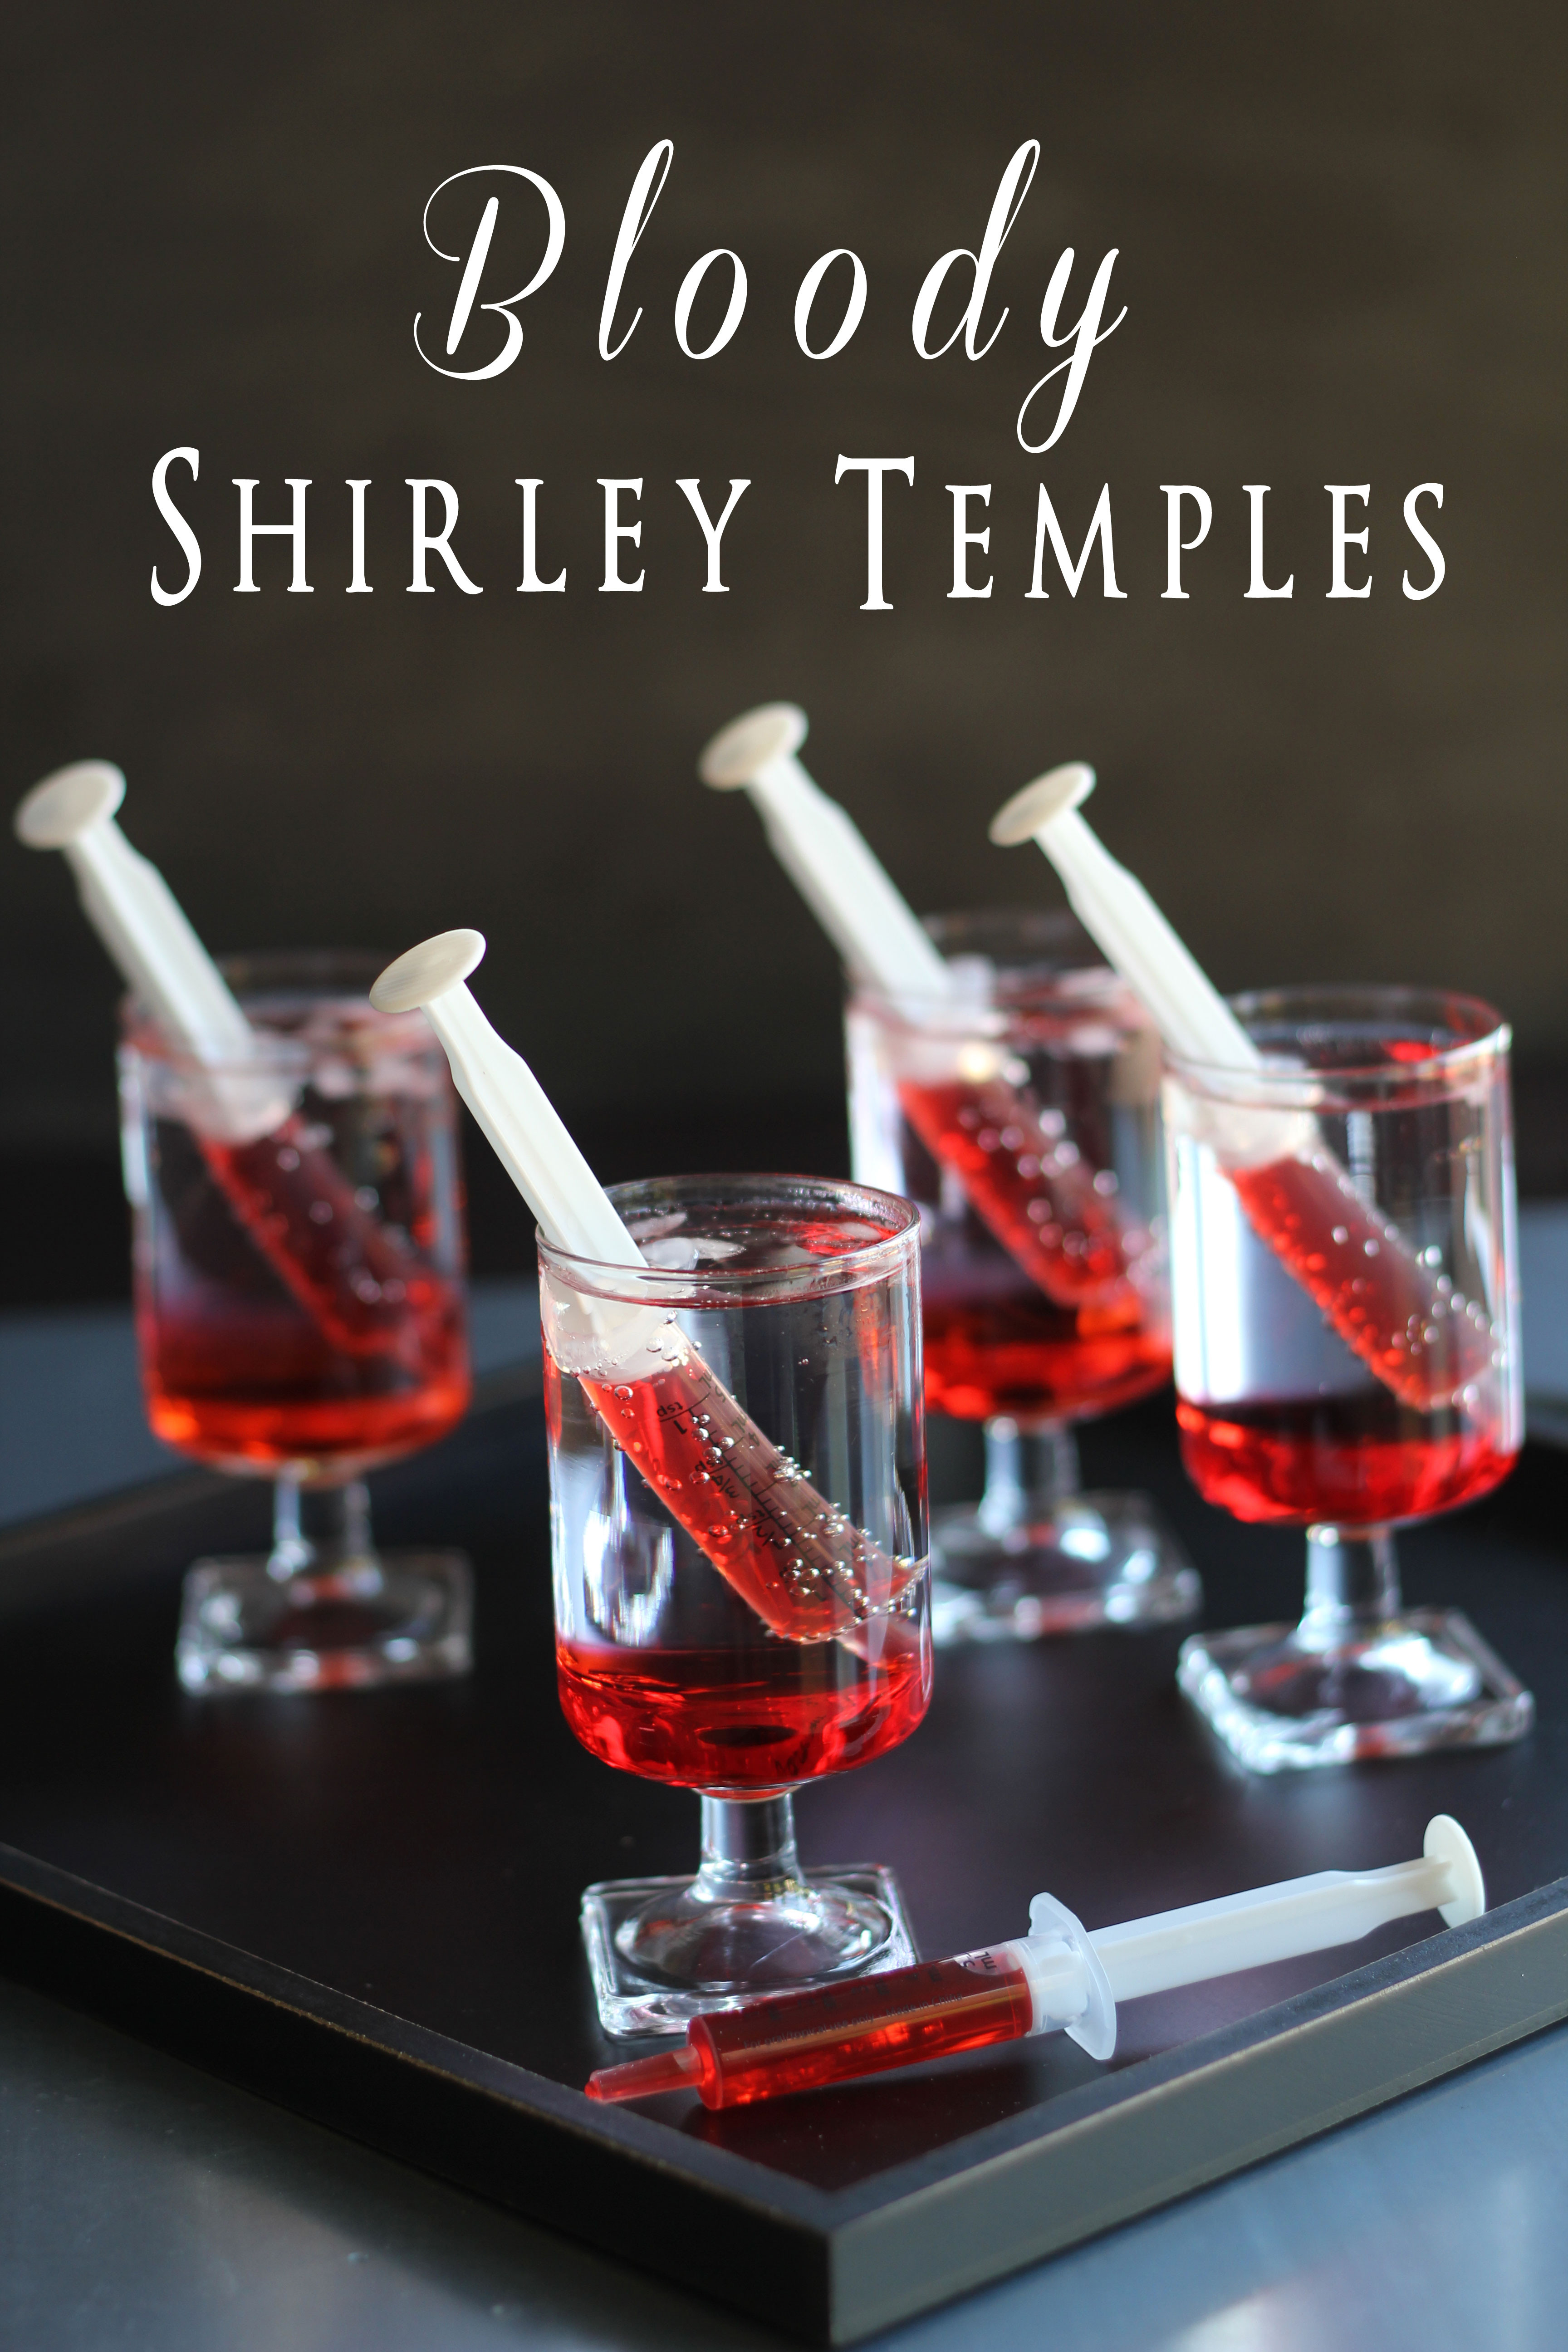 Halloween Drinks Pinterest  Bloody Shirley Temples TGIF This Grandma is Fun